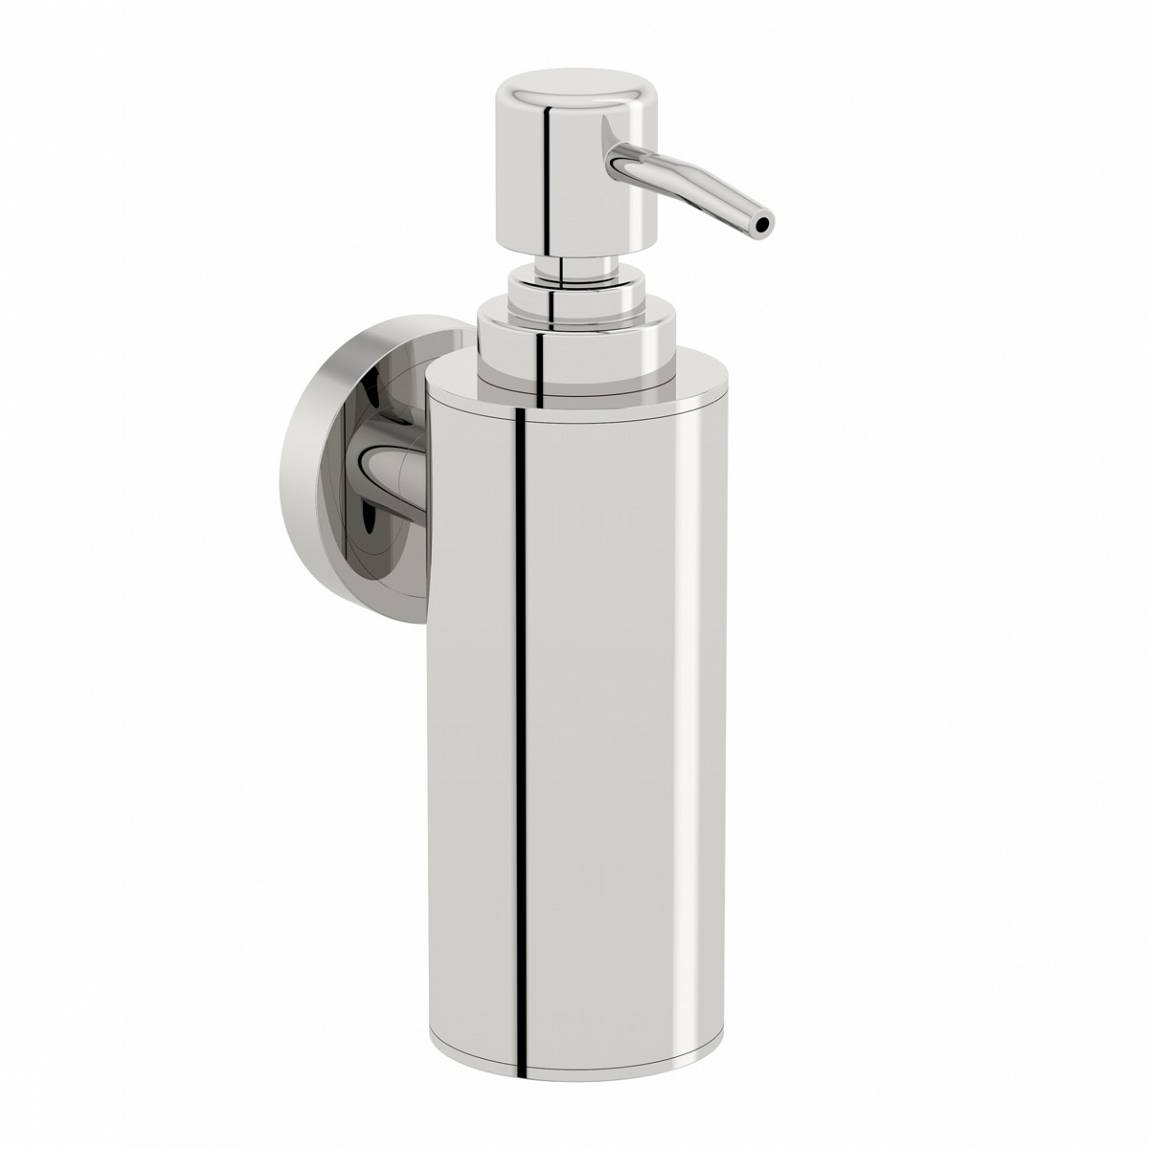 Wall Mounted Kitchen Soap Dispenser Options Wall Mounted Slim Stainless Steel Soap Pump